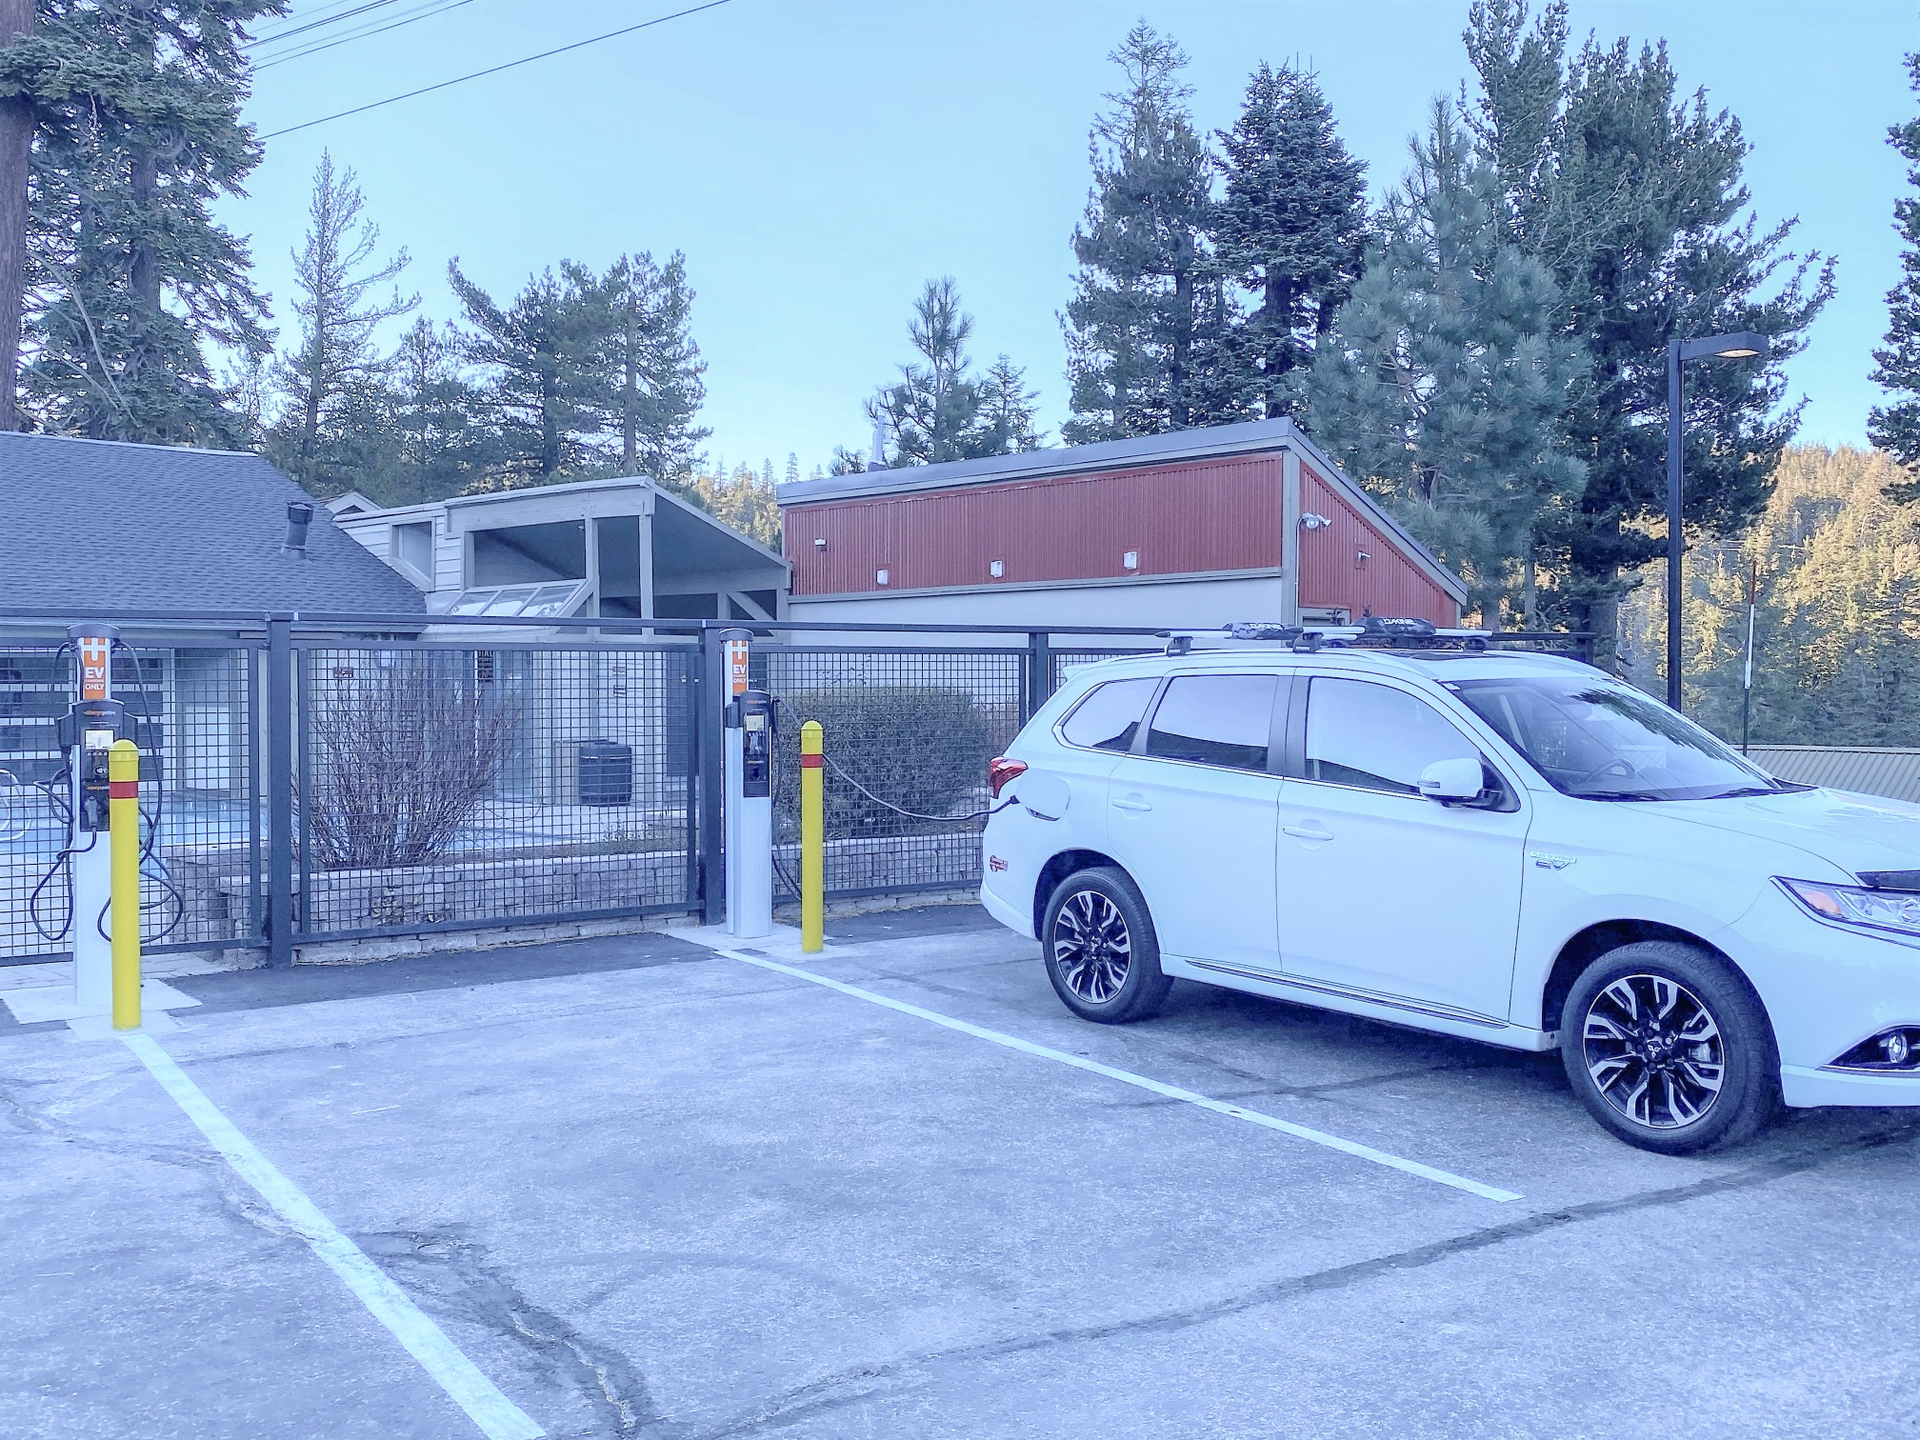 Though SCE's Charge Ready program, five Level 2 charging stations that can be used with most EVS, were installed at the 1849 Condos.